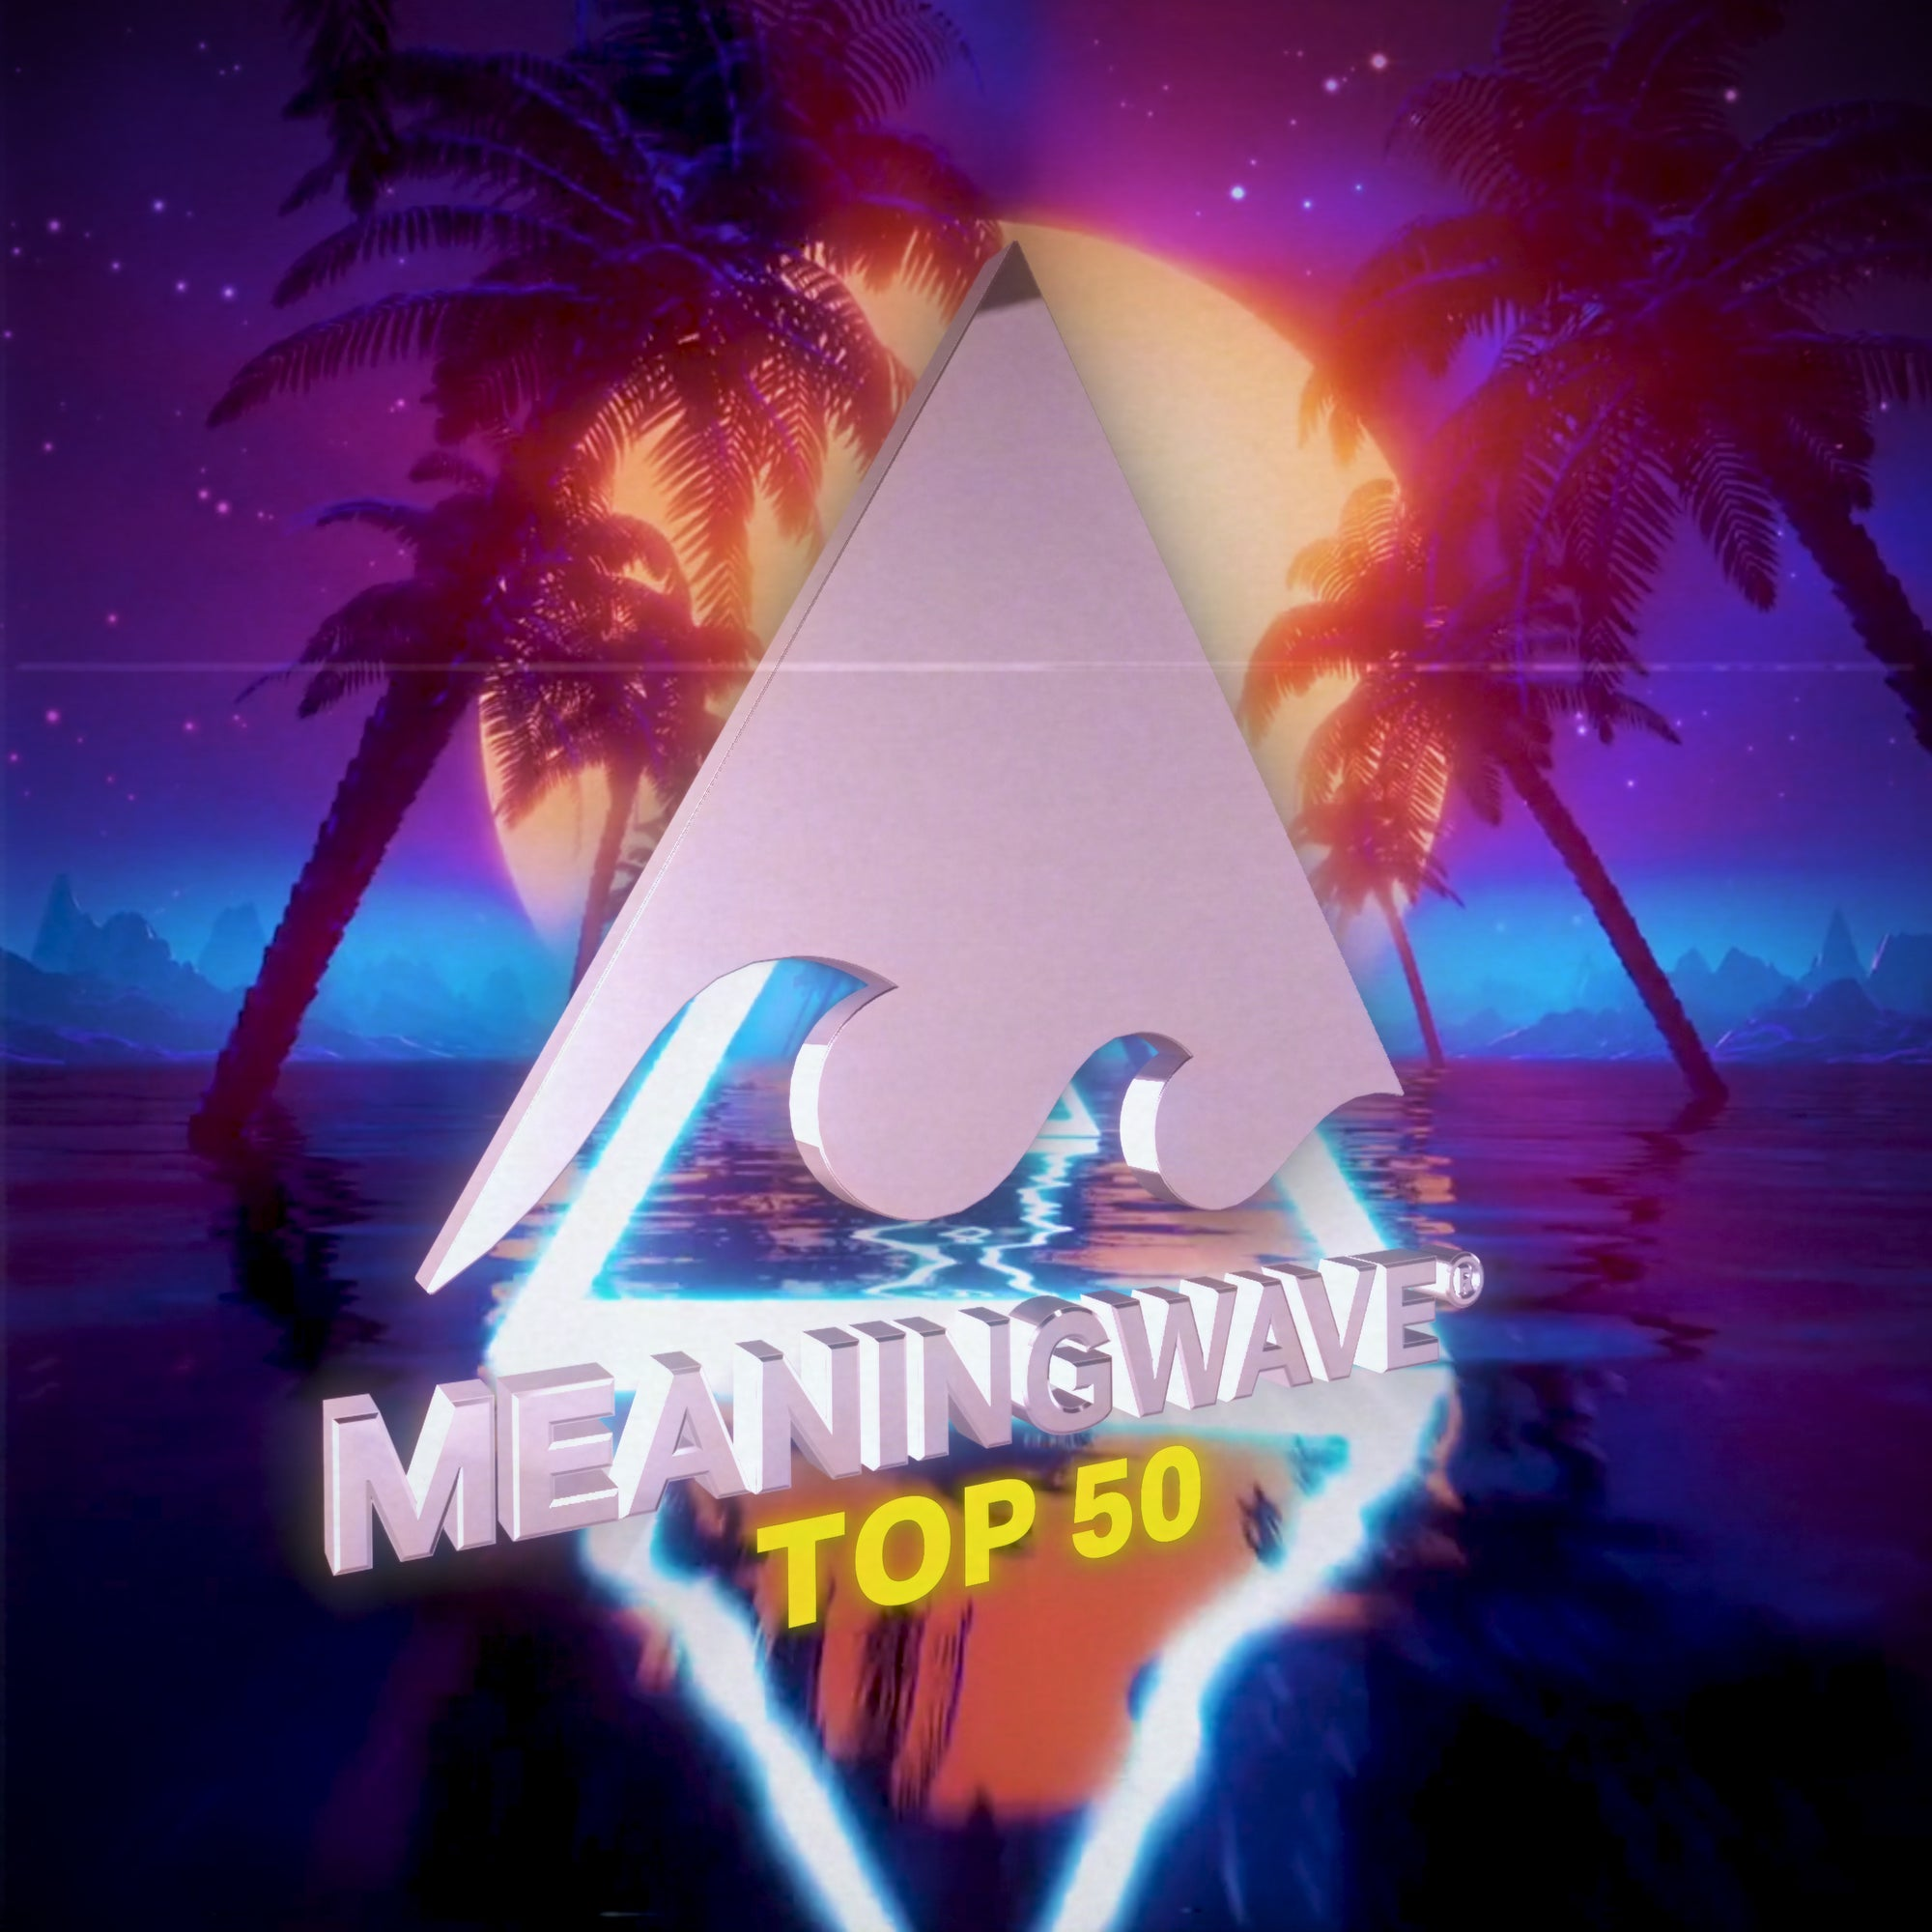 The Meaningwave Top 50! (March 2021)